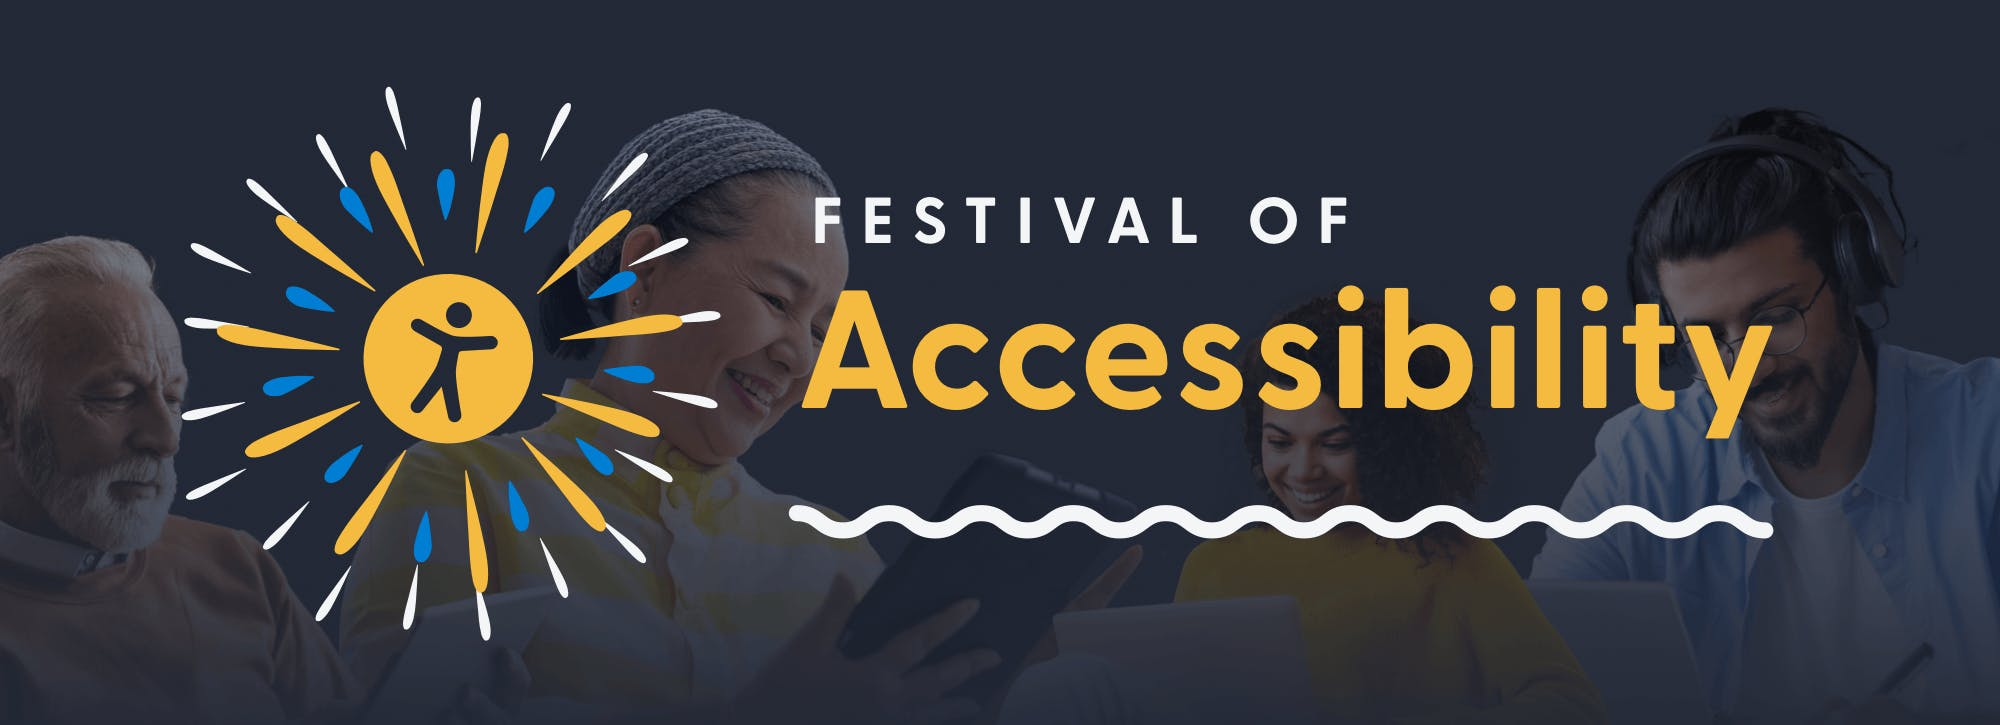 Festival of Accessibility with fireworks and an accessibility logo